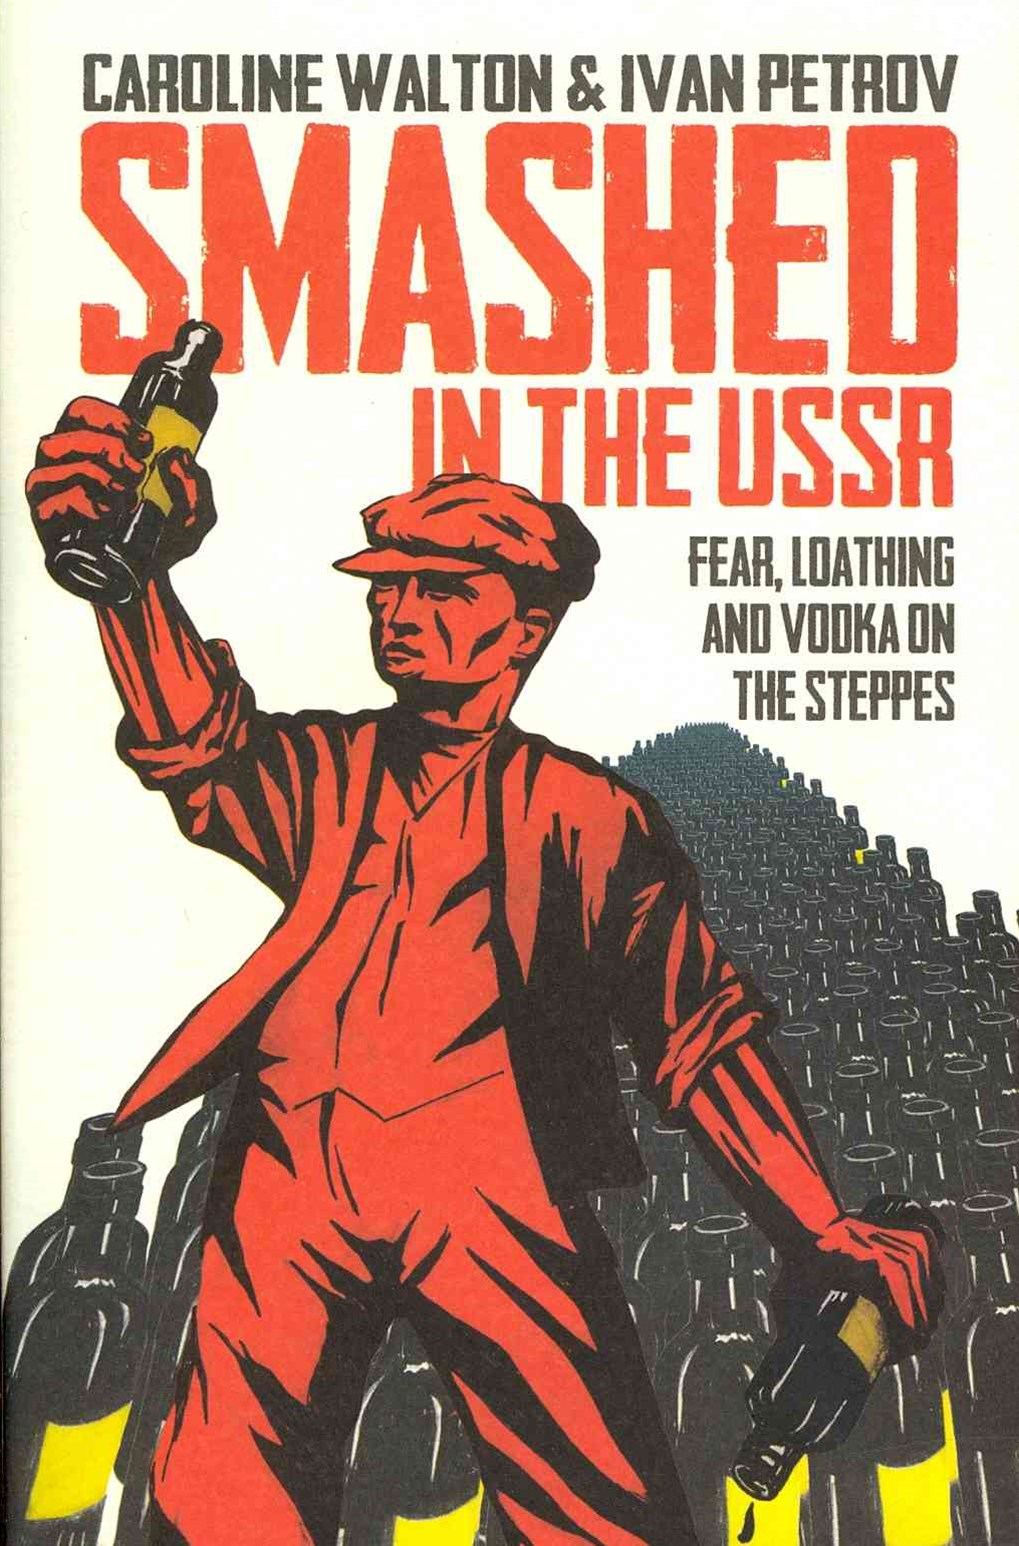 Smashed in the USSR